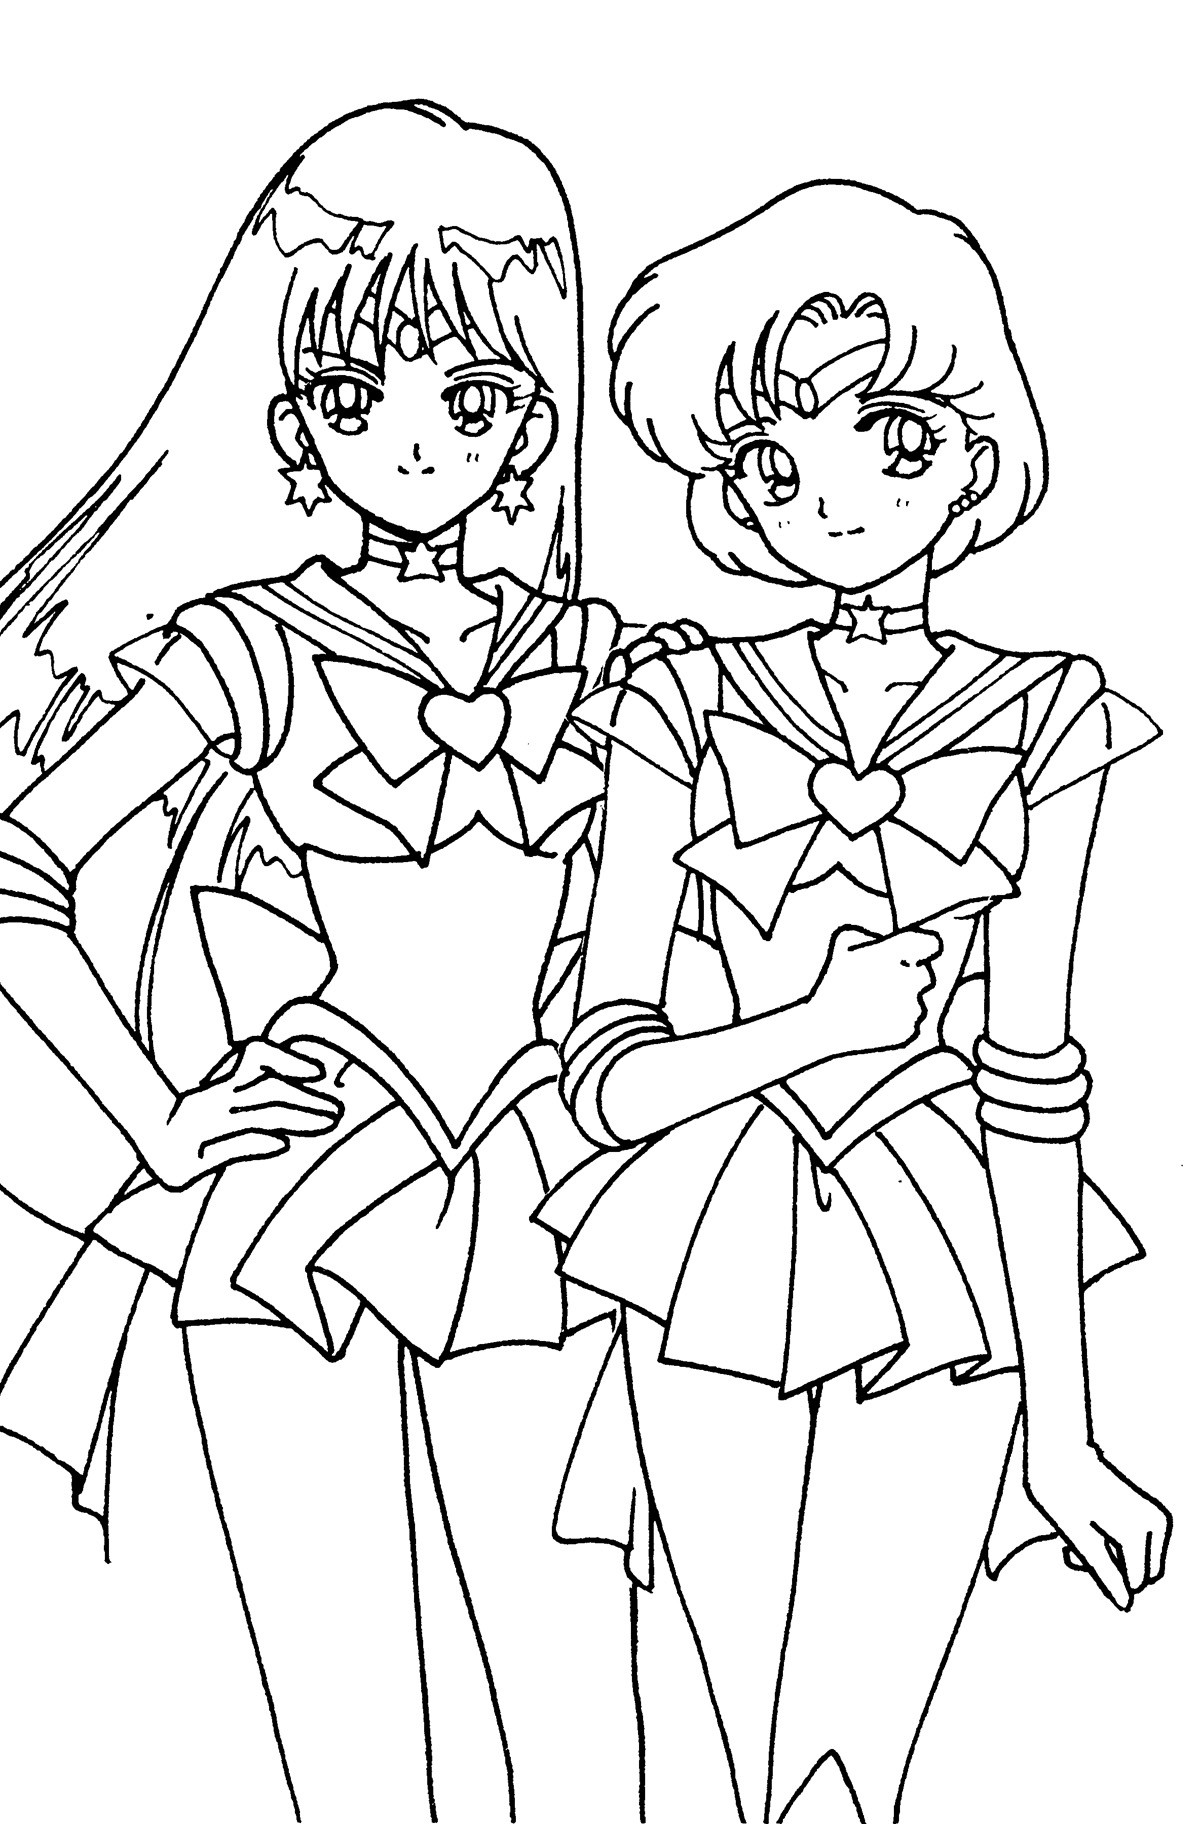 Sailor Mars Coloring Pages To Print - Bltidm